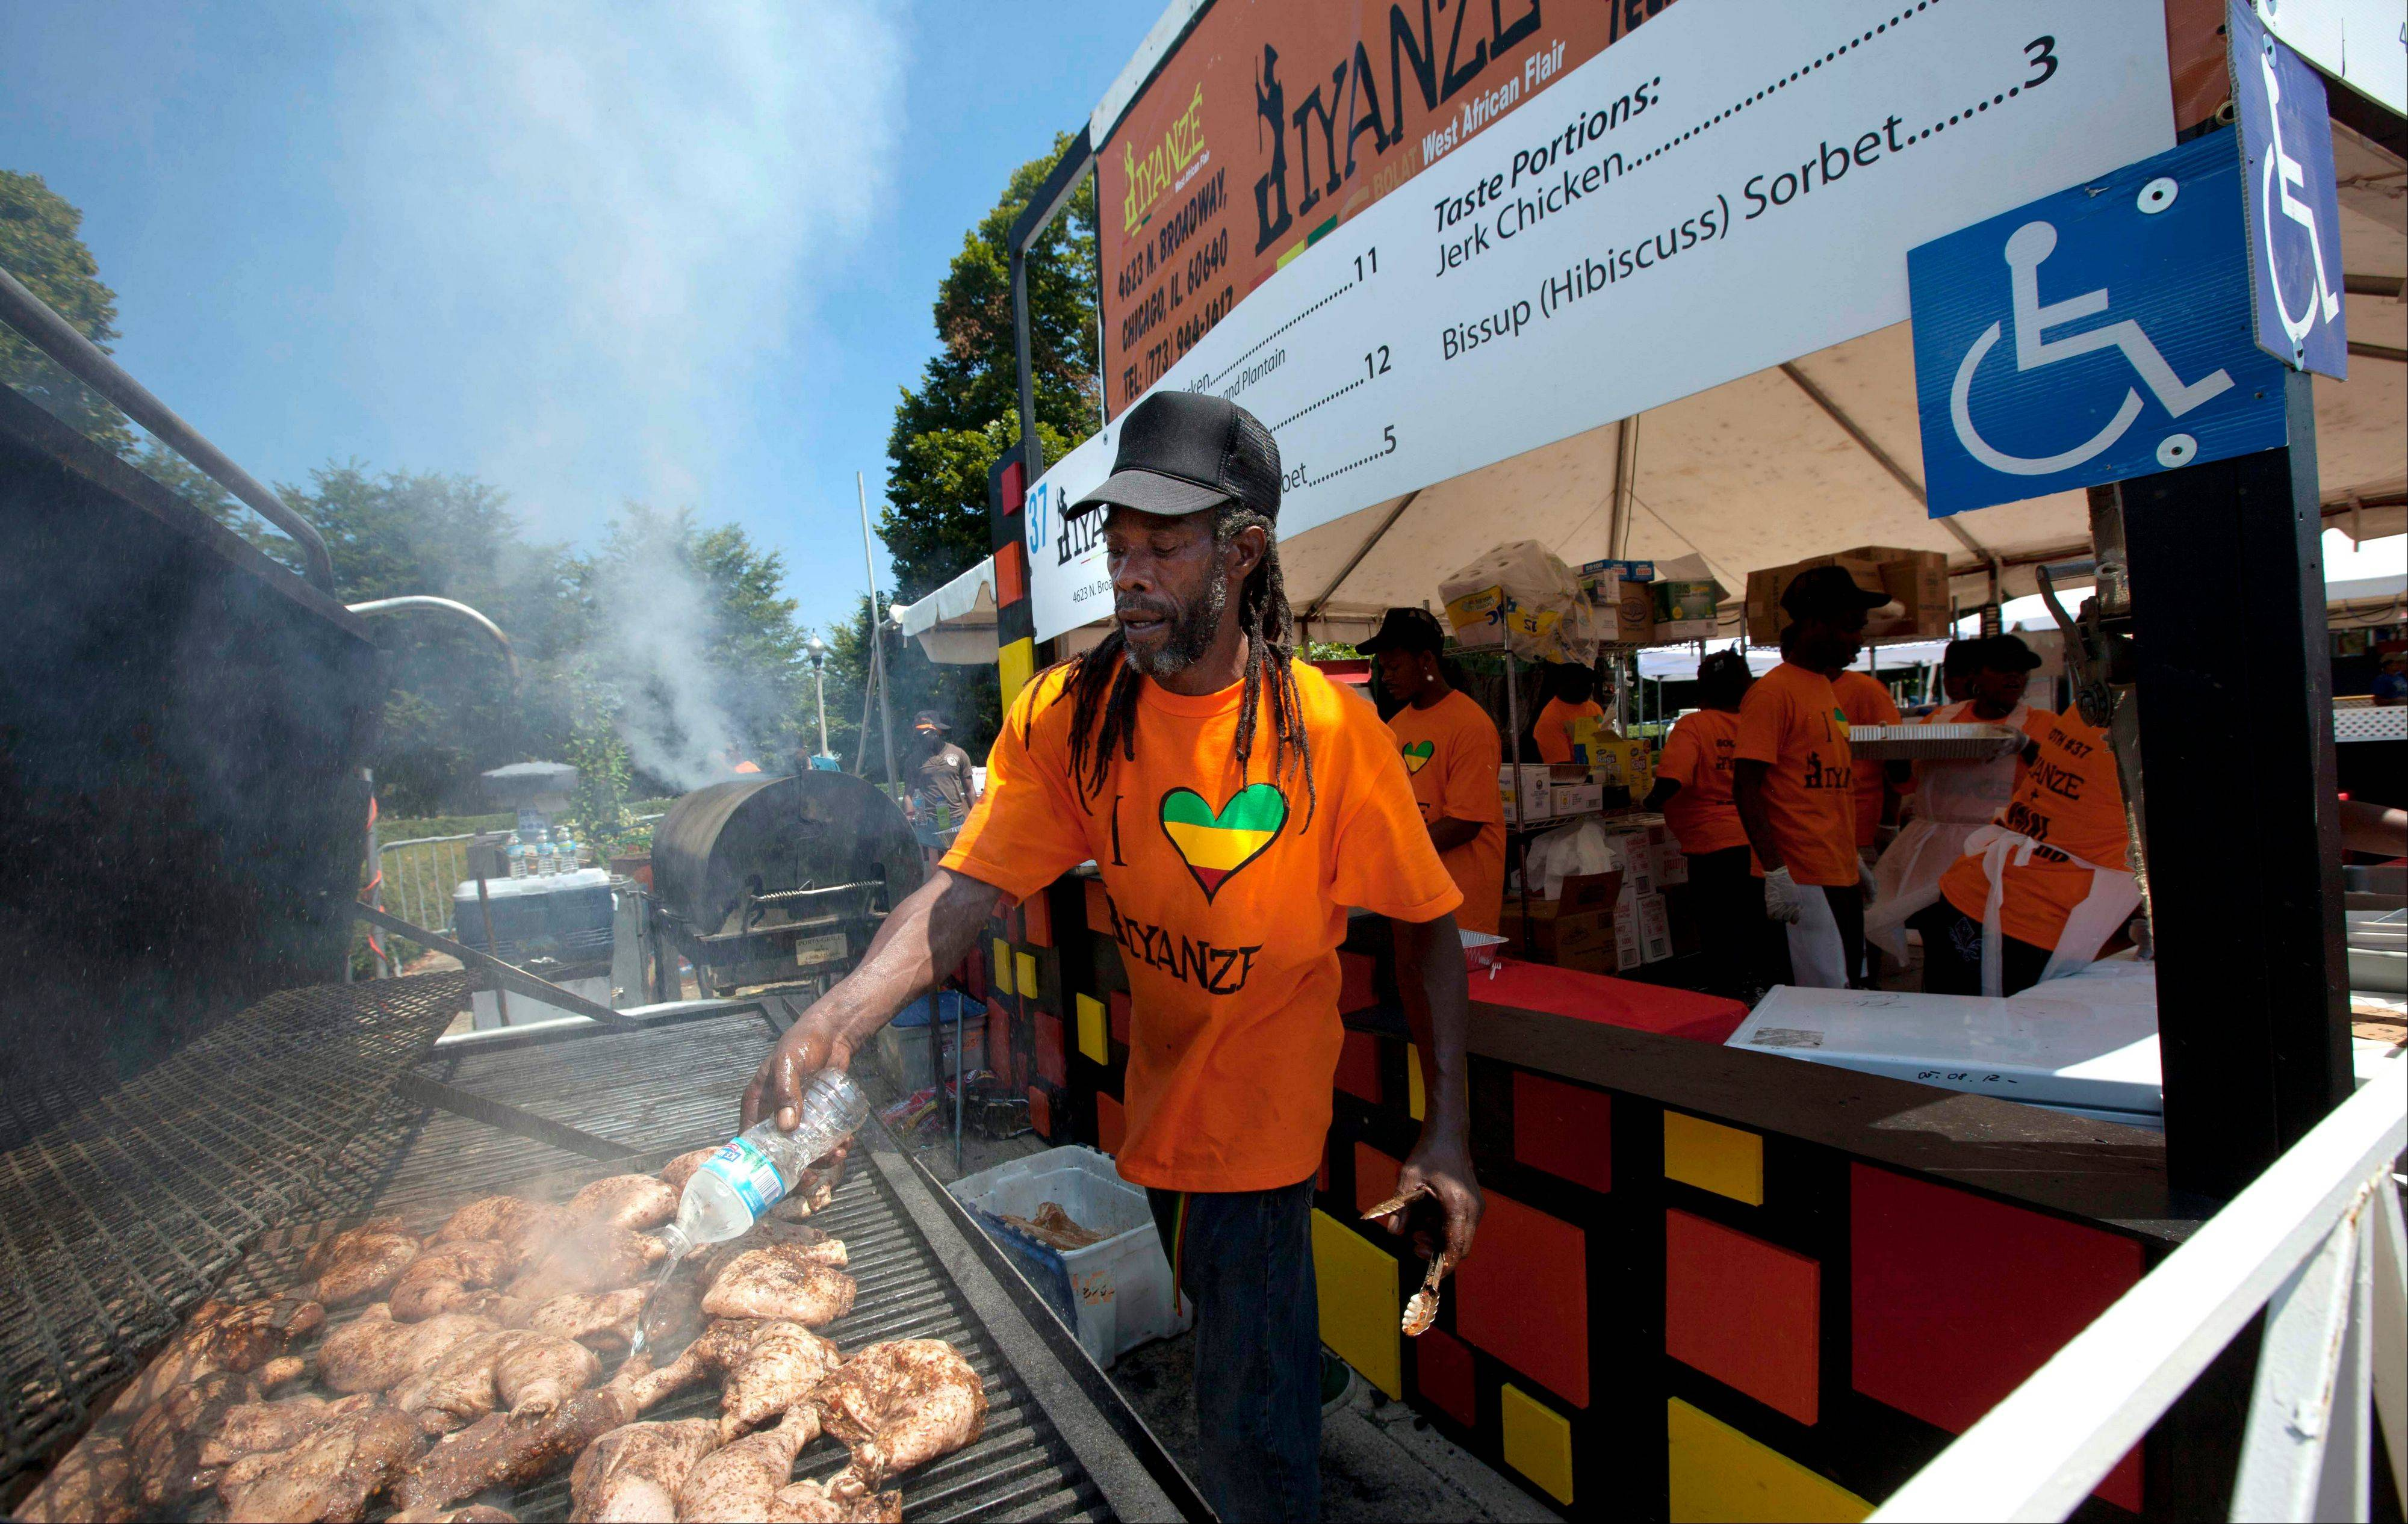 A vendor barbecues chicken Wednesday at the Taste of Chicago.